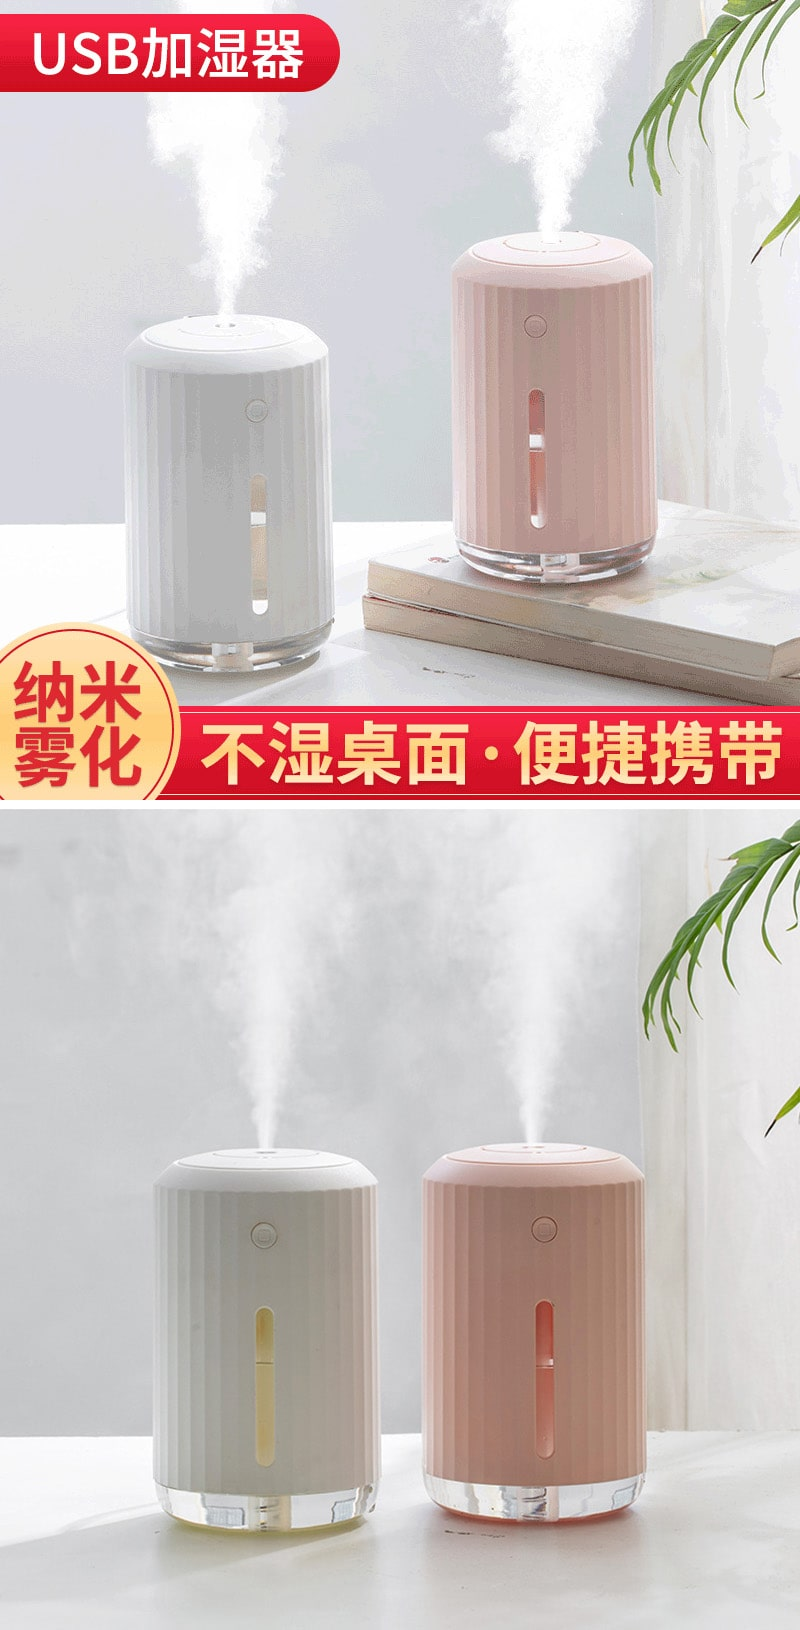 USB Mist Air Humidifier - Intro